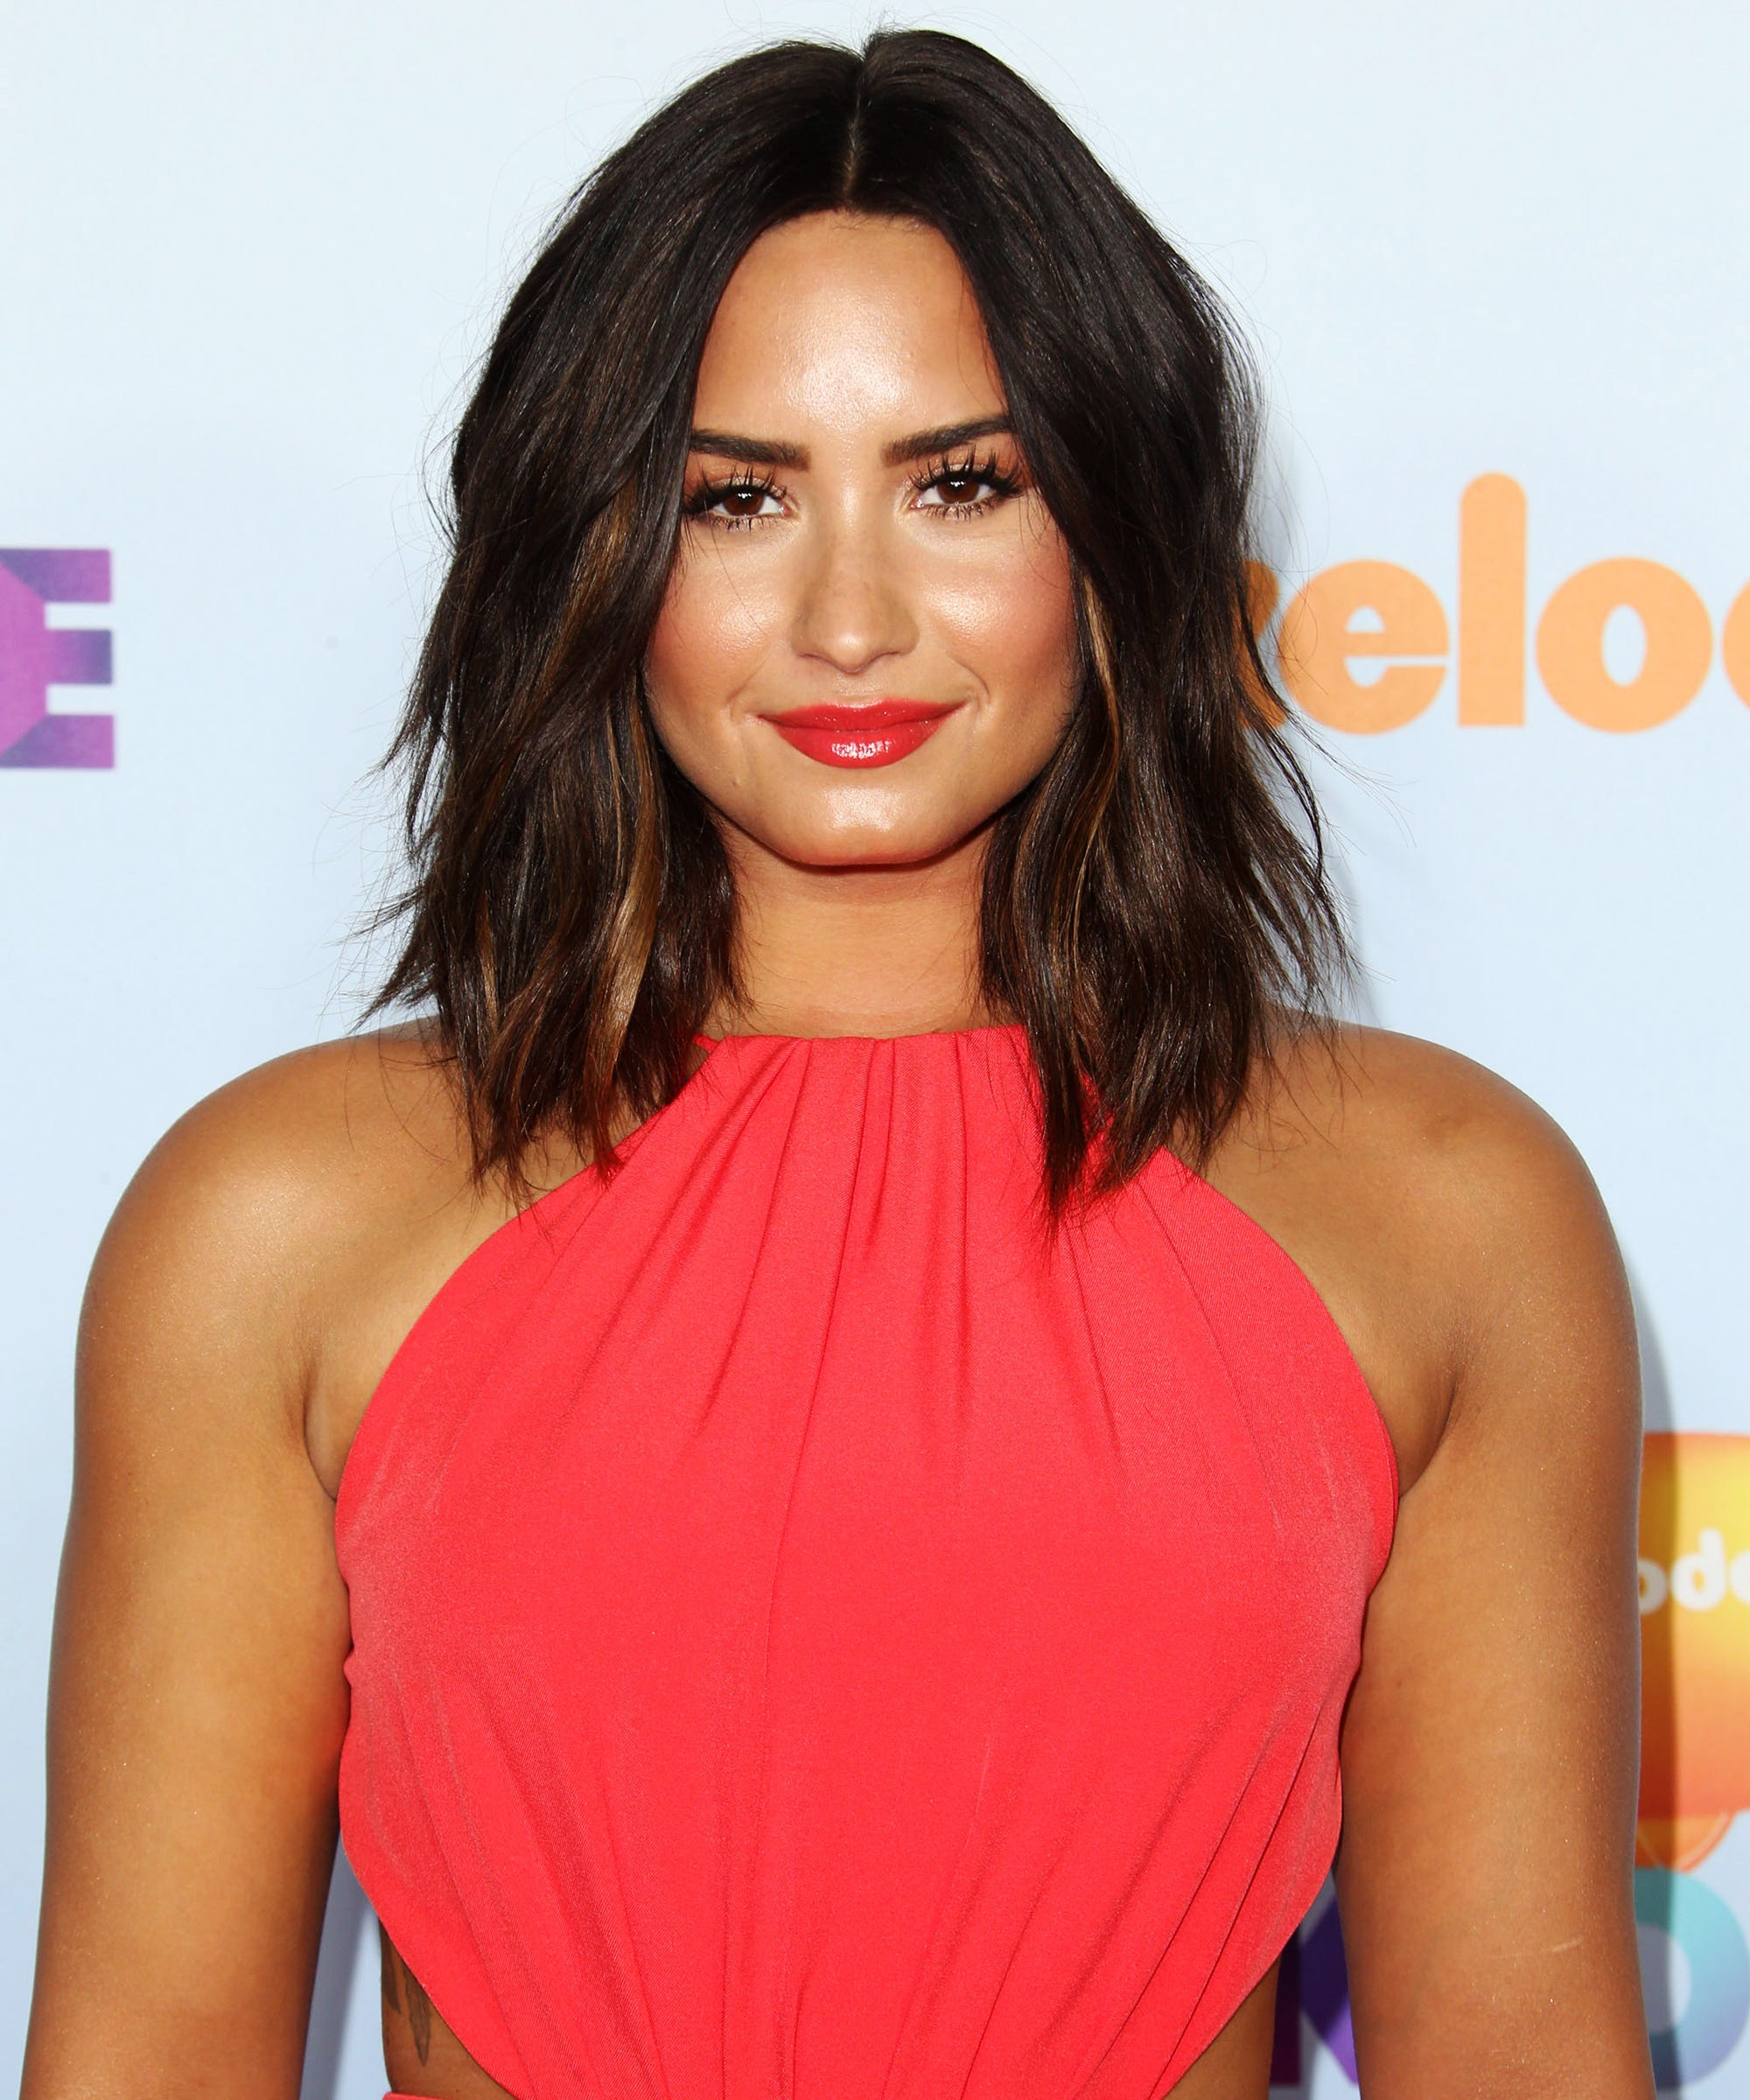 Celebrities Without Makeup - Madonna Demi Lovato